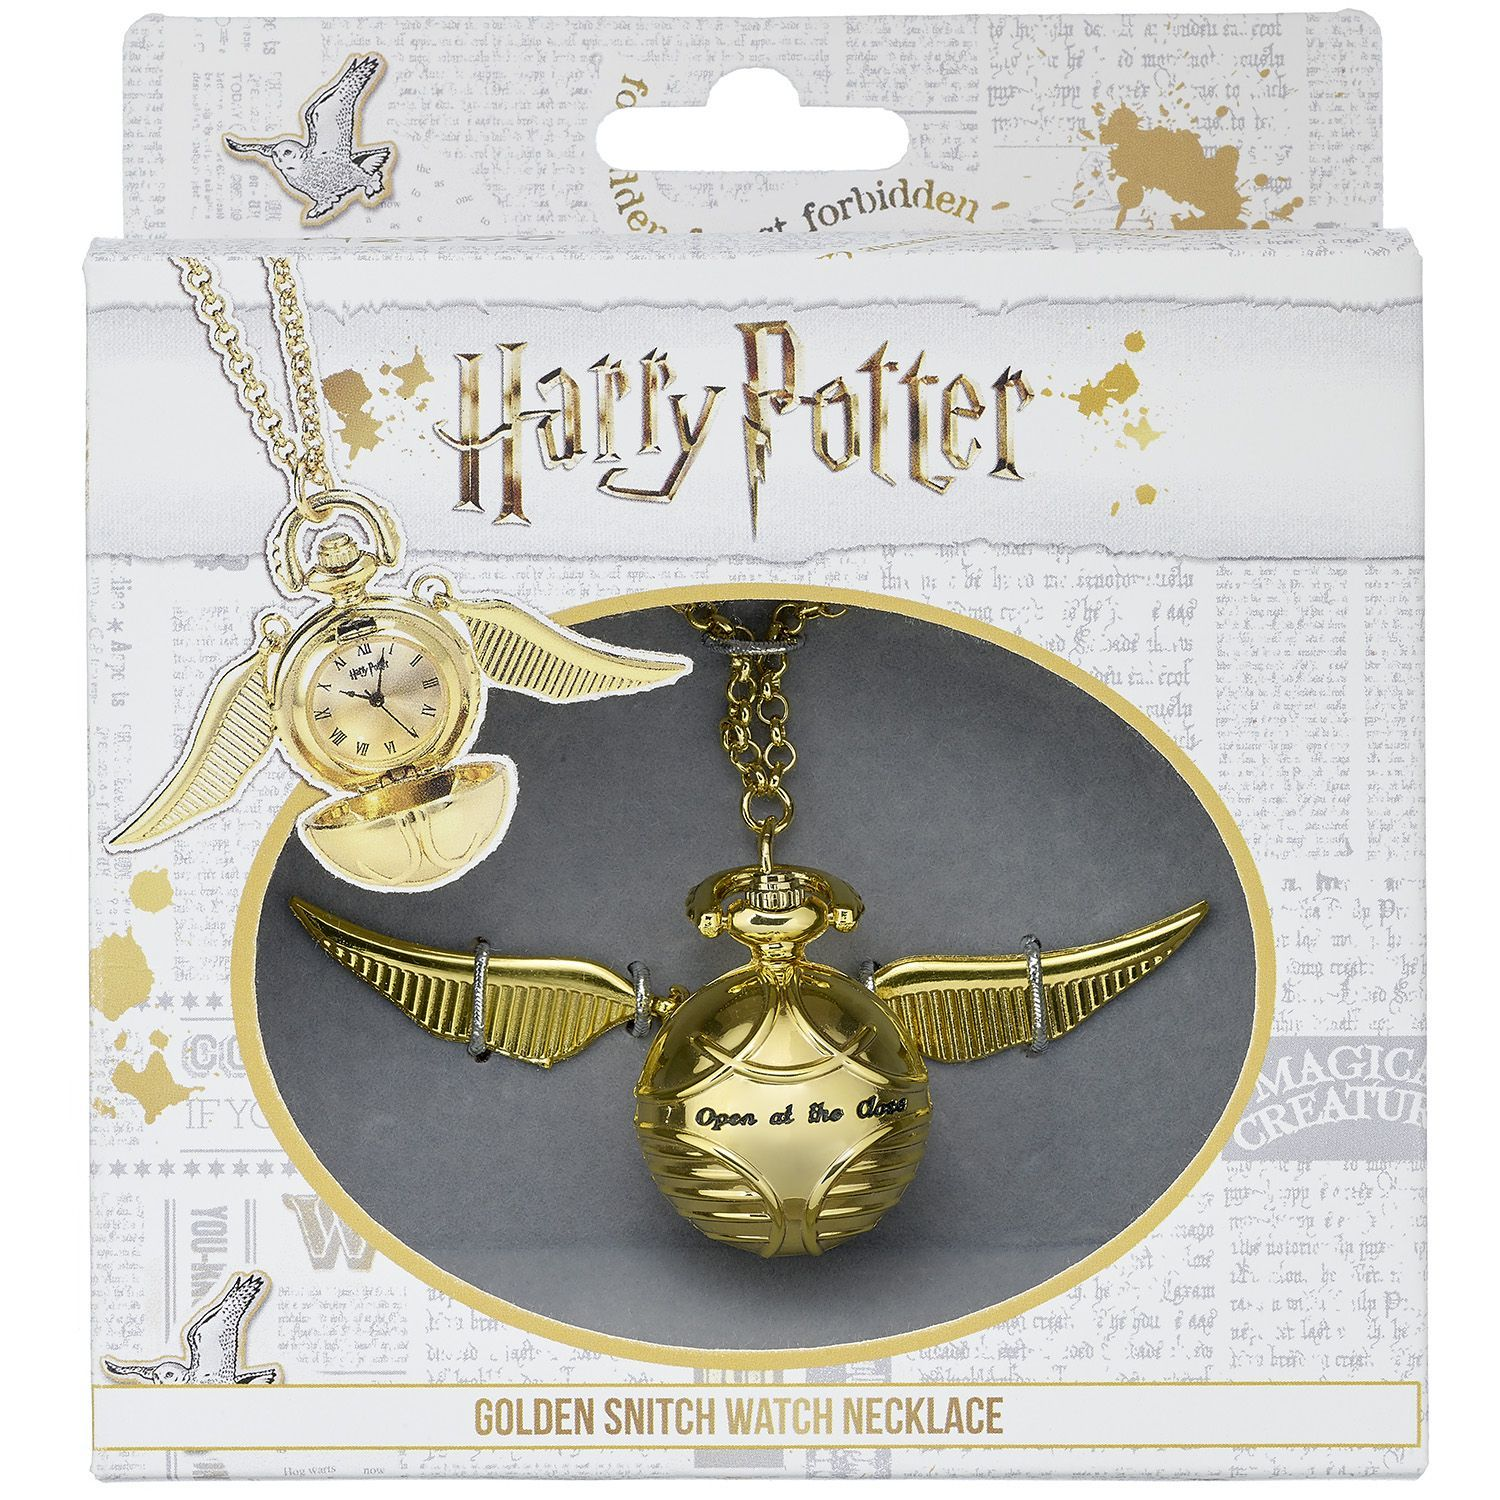 The Carat Shop: Harry Potter Golden Snitch Watch Necklace image